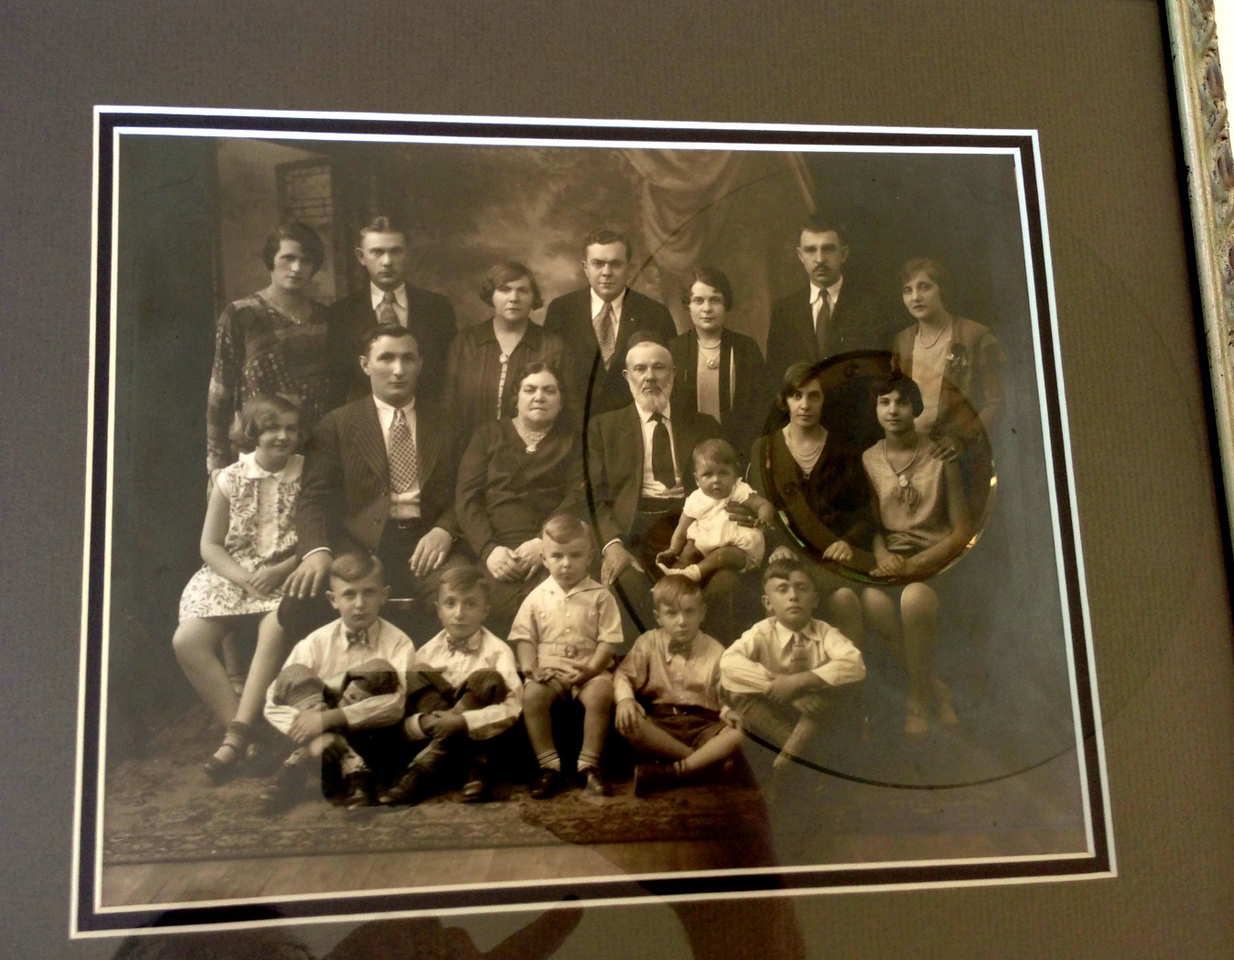 Diane Diskin's extended family. Top to Bottom, Left to Right: **Top Row** * Minnie (wife of Al - my maternal (Lena) grandmother's brother) * Moe Last (Lena's brother; my great Uncle) * Gussie (Last) Sherman, Lena's sister * Ben Last, Lena's brother * Sylvia, Lena's youngest sister.  Grandma Diane's aunt but they were close in age and more like sisters. * Al Eder (married Henrietta) * Henrietta (Last) Eder, Lena's sister **Middle Row** * Helen (Sherman) Harris, Gussie's daughter * My Grandpa Small (found out at age 11 he was my step Grandfather as Israel Kurtz died when Grandma was 2) * Mollie Last (my great-grandmother) * Simon Last (my great-grandfather - see next picture) holding Minnie's baby * My grandmother - Lena (Last) Small * Grandman Diane **Bottom Row** * My uncle Robert (Diane's brother) * My uncle Ken (Diane's brother) * Warren (Buddy) Eder - Henrietta's son * Marvin - Gussie's son * Herb Eder - Henrietta's son